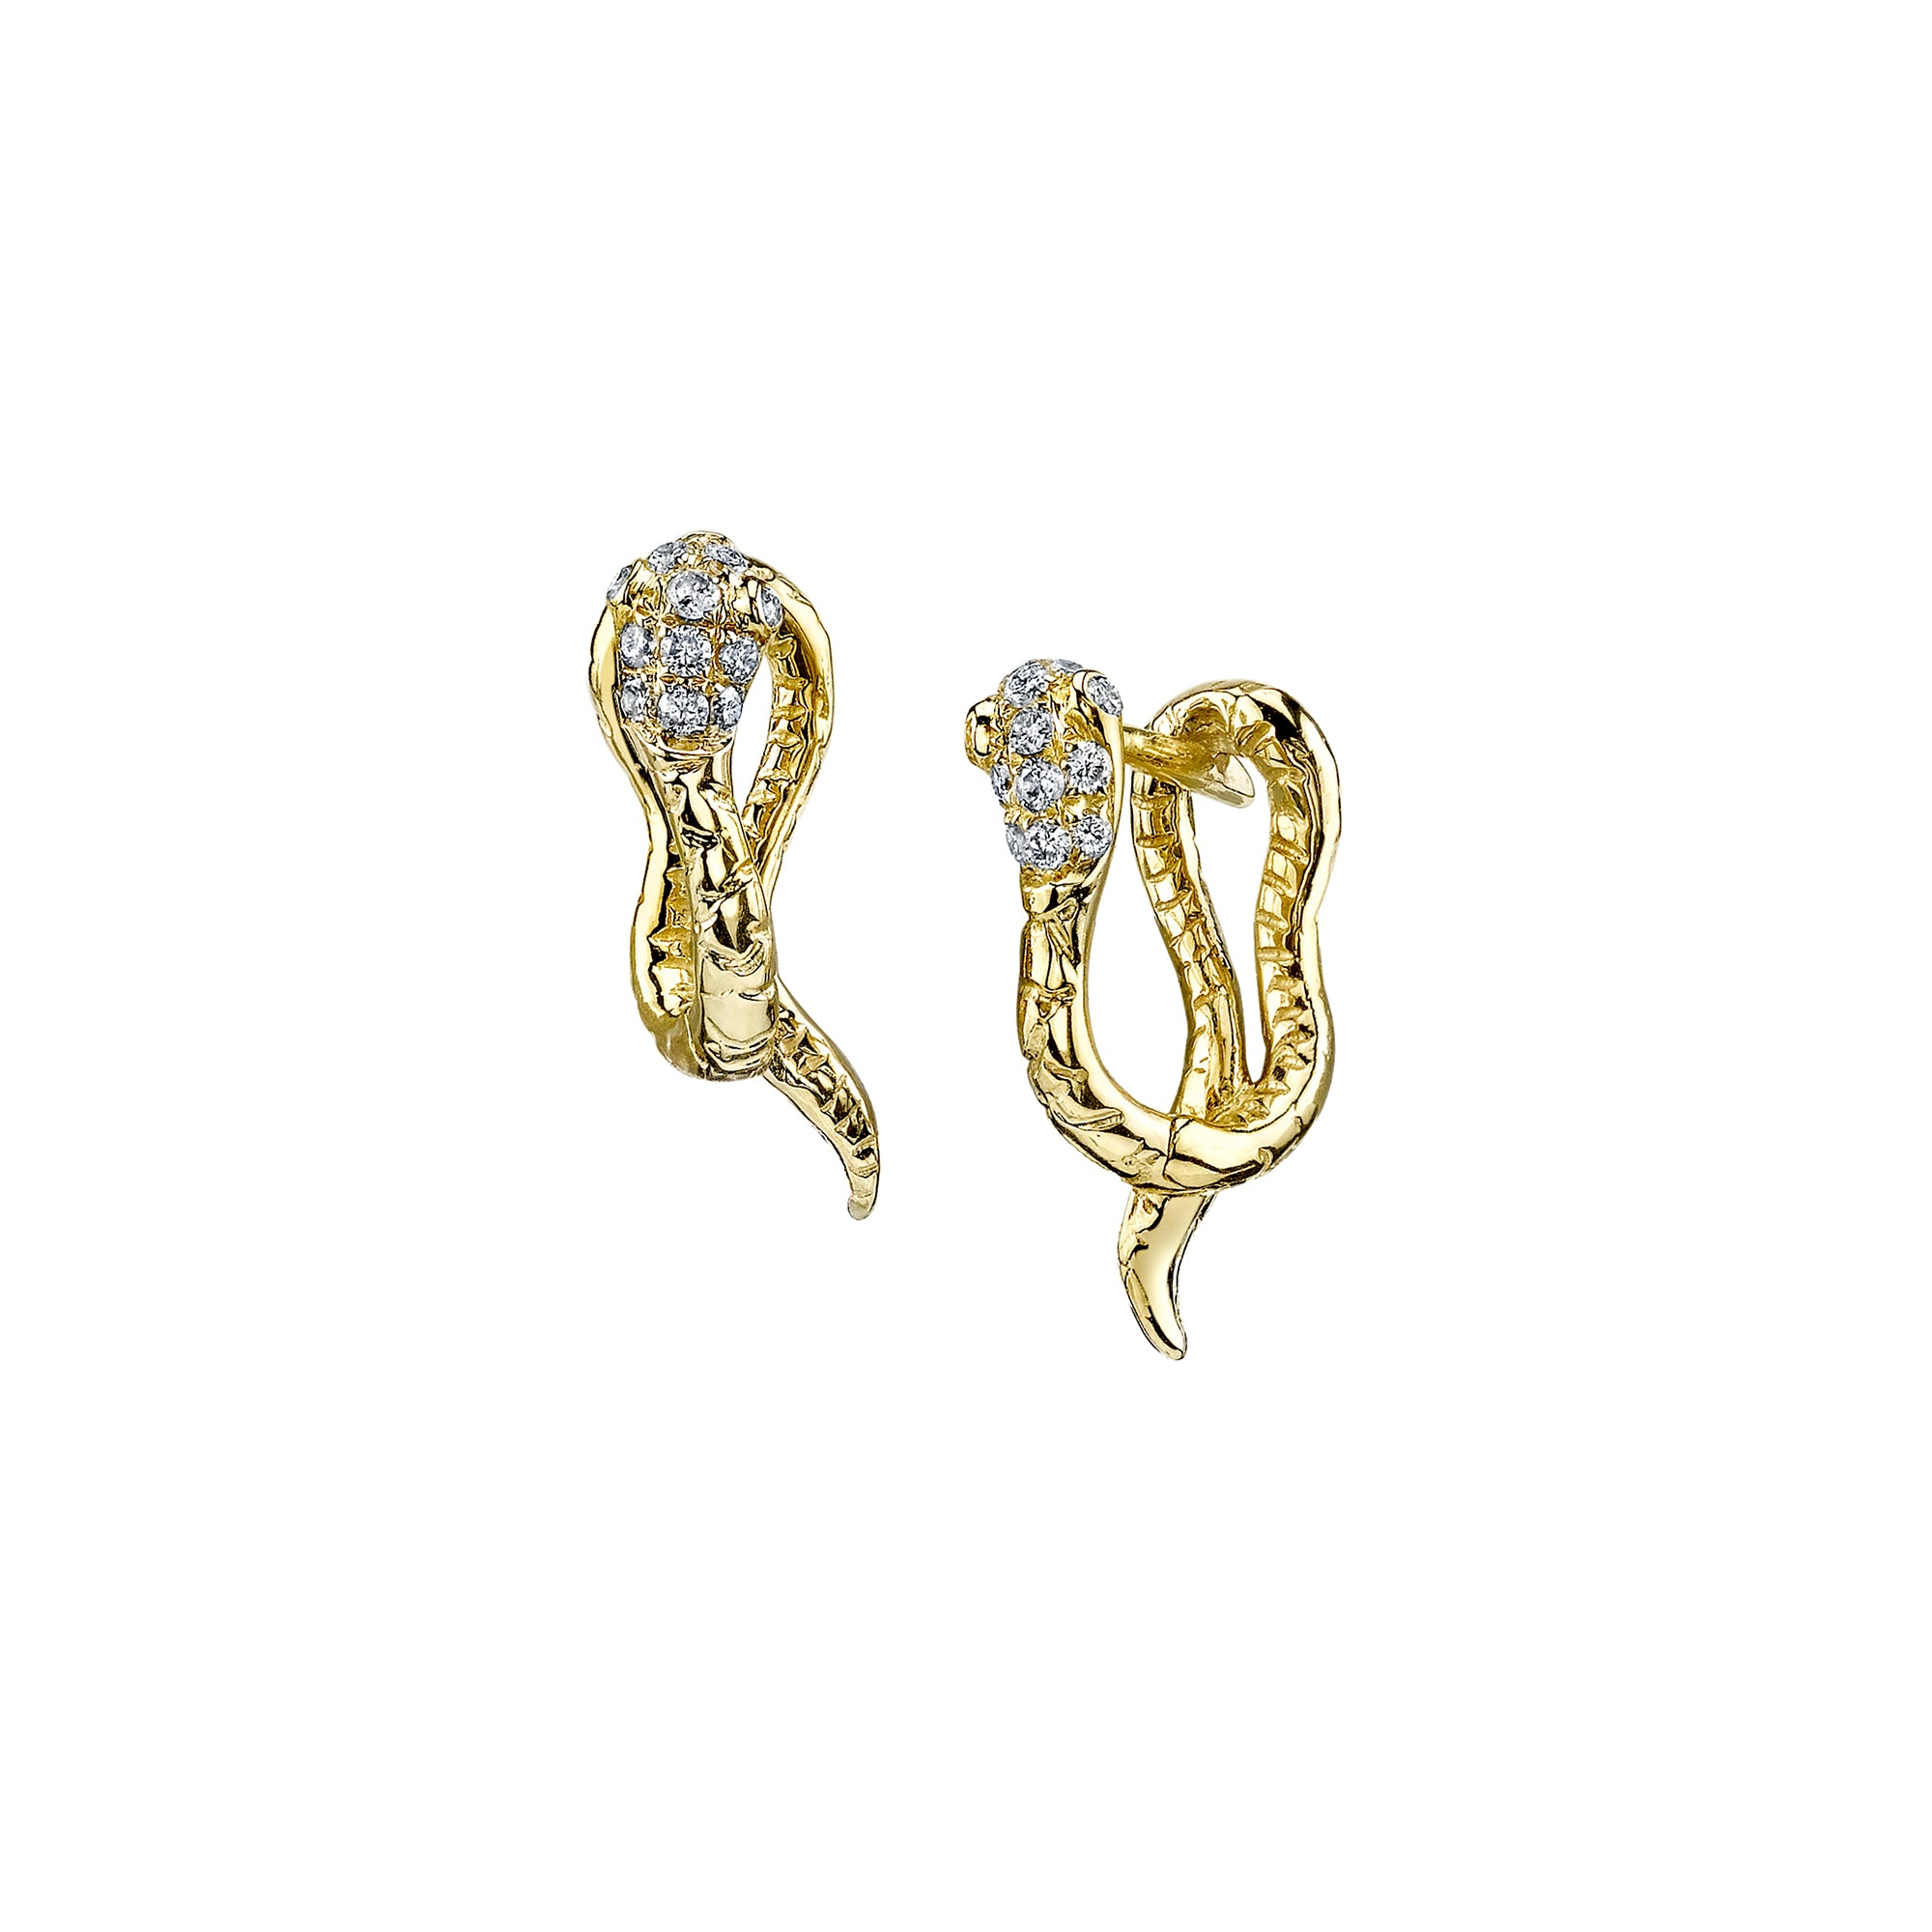 Gold & White Diamond Snake Huggies by Borgioni for Broken English Jewelry